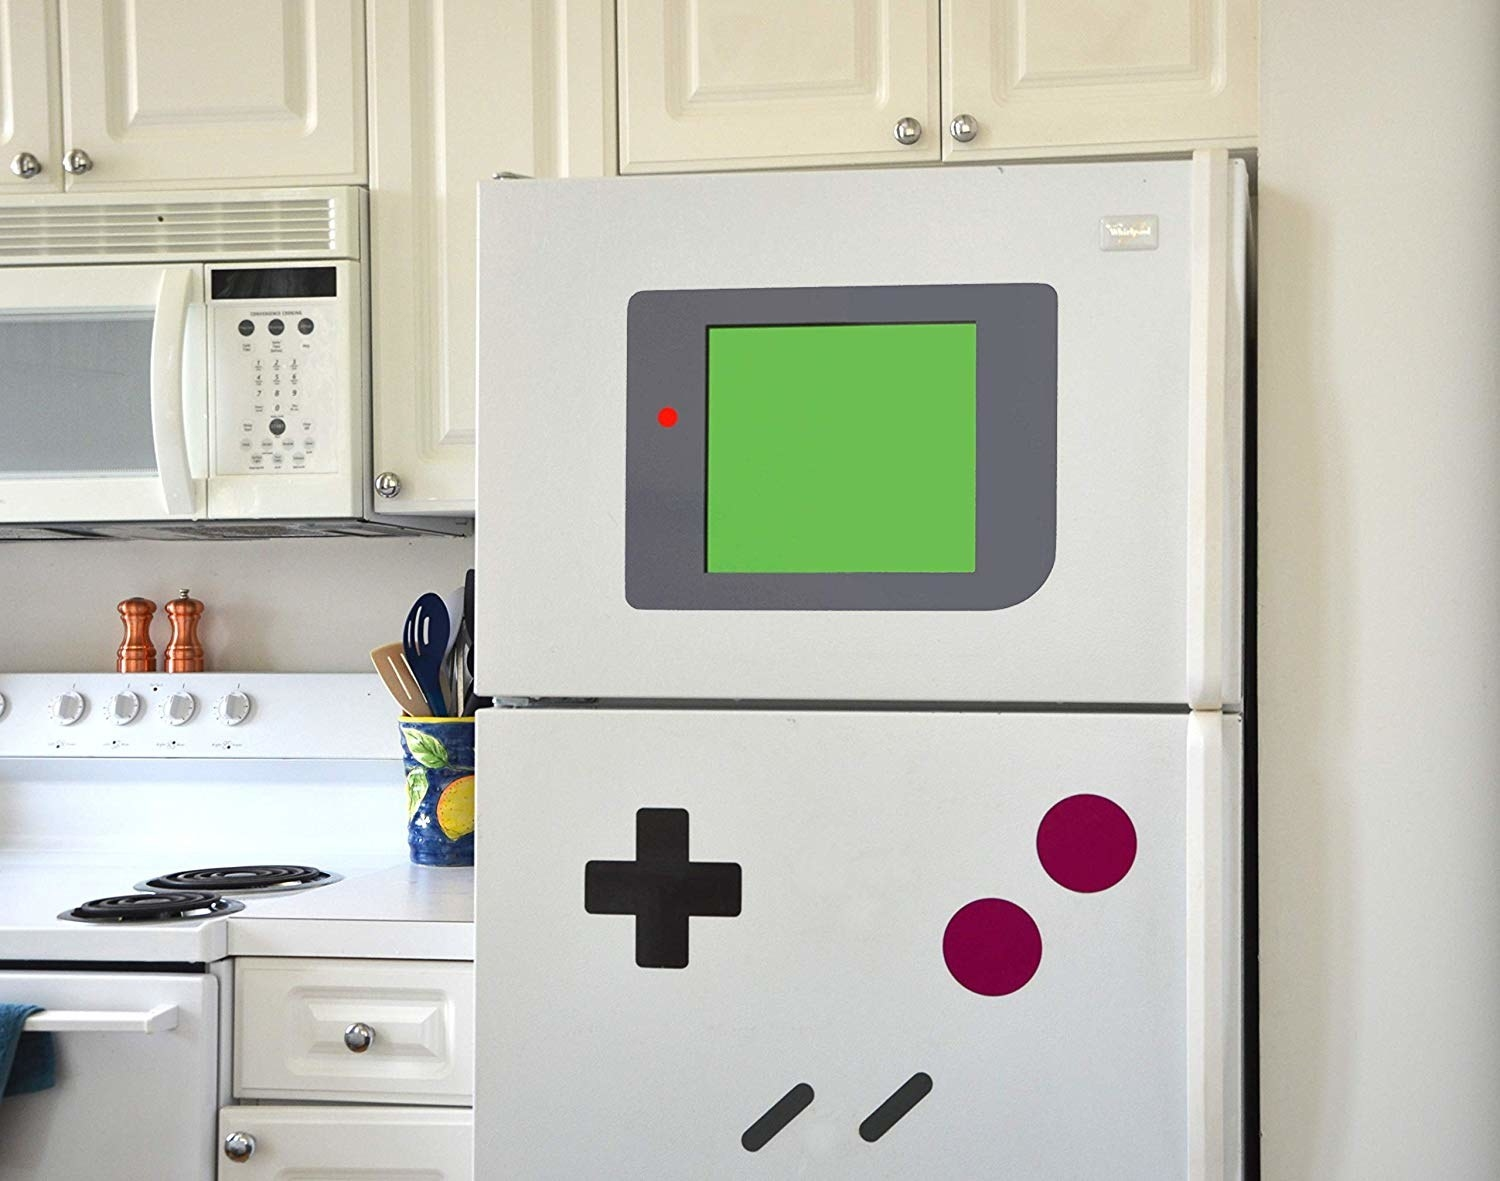 Refrigerator with old school Gameboy buttons and screen decals